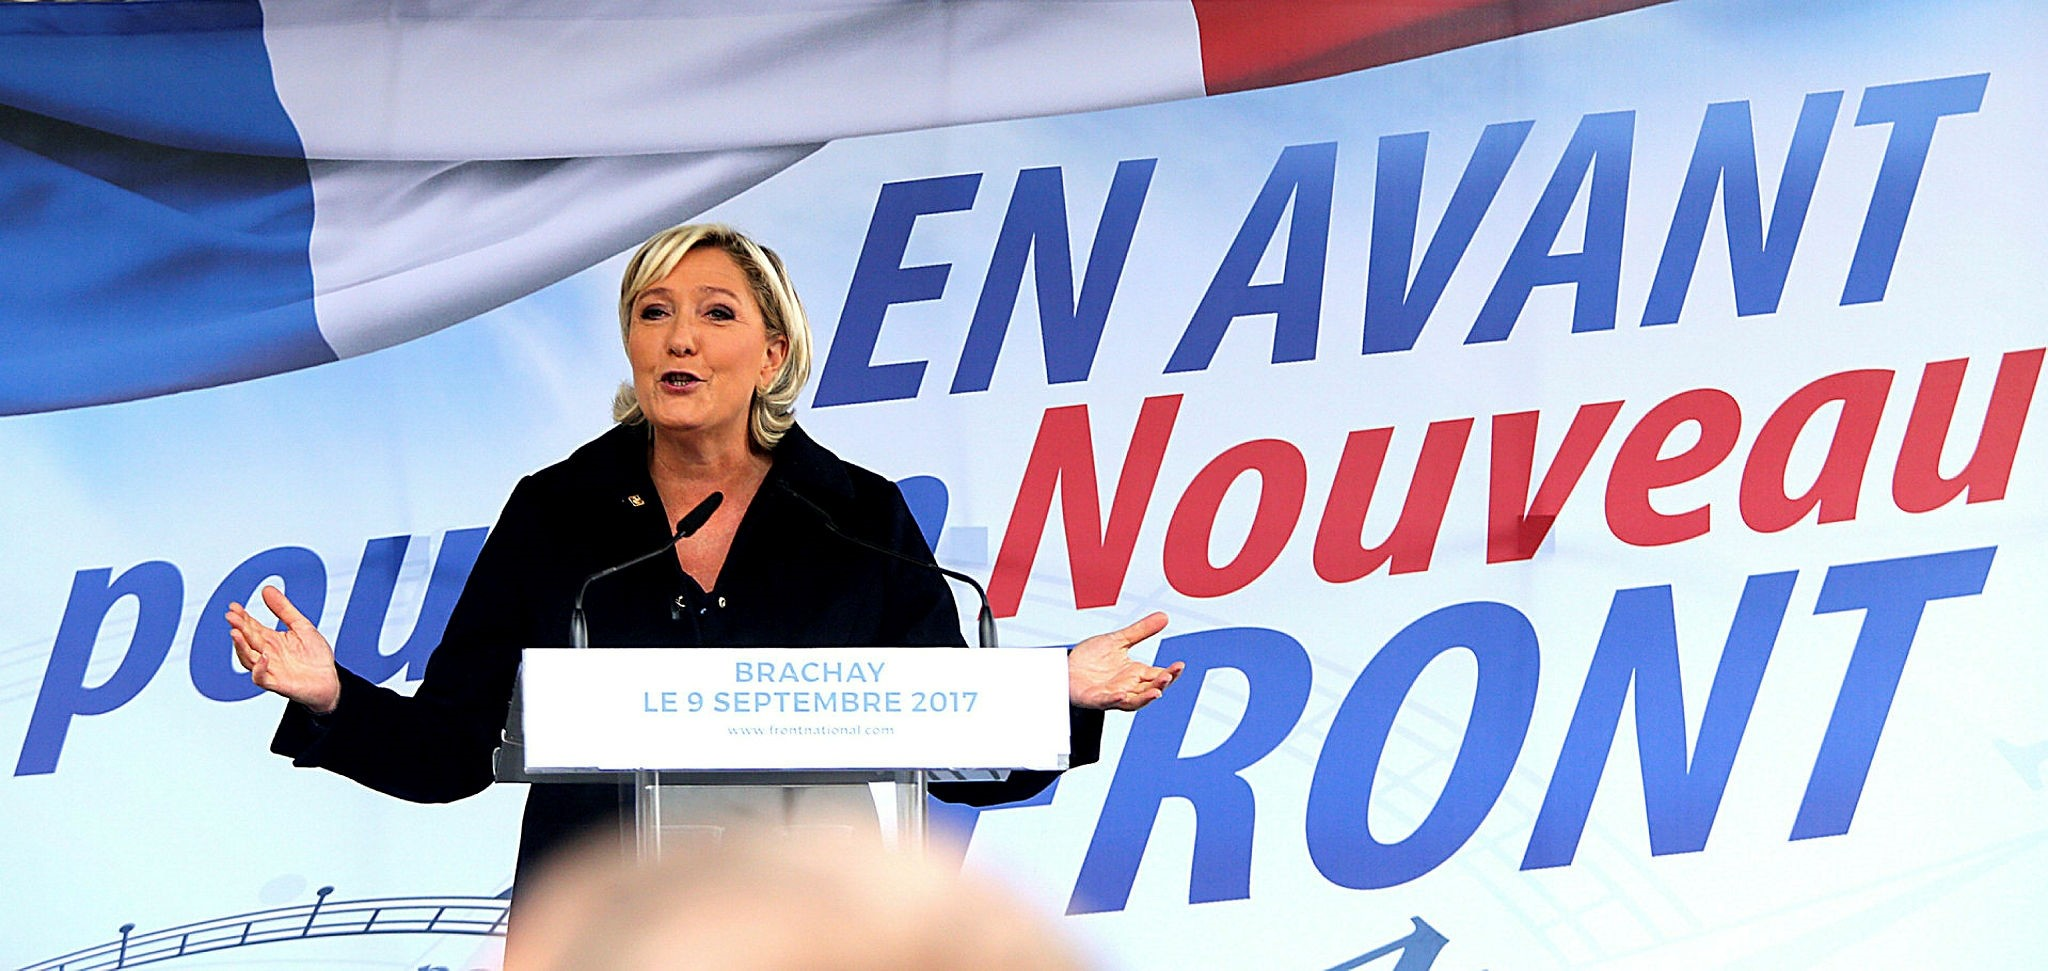 Marine Le Pen of the Front National delivers a back-to-work speech in Brachay, Sept. 9.